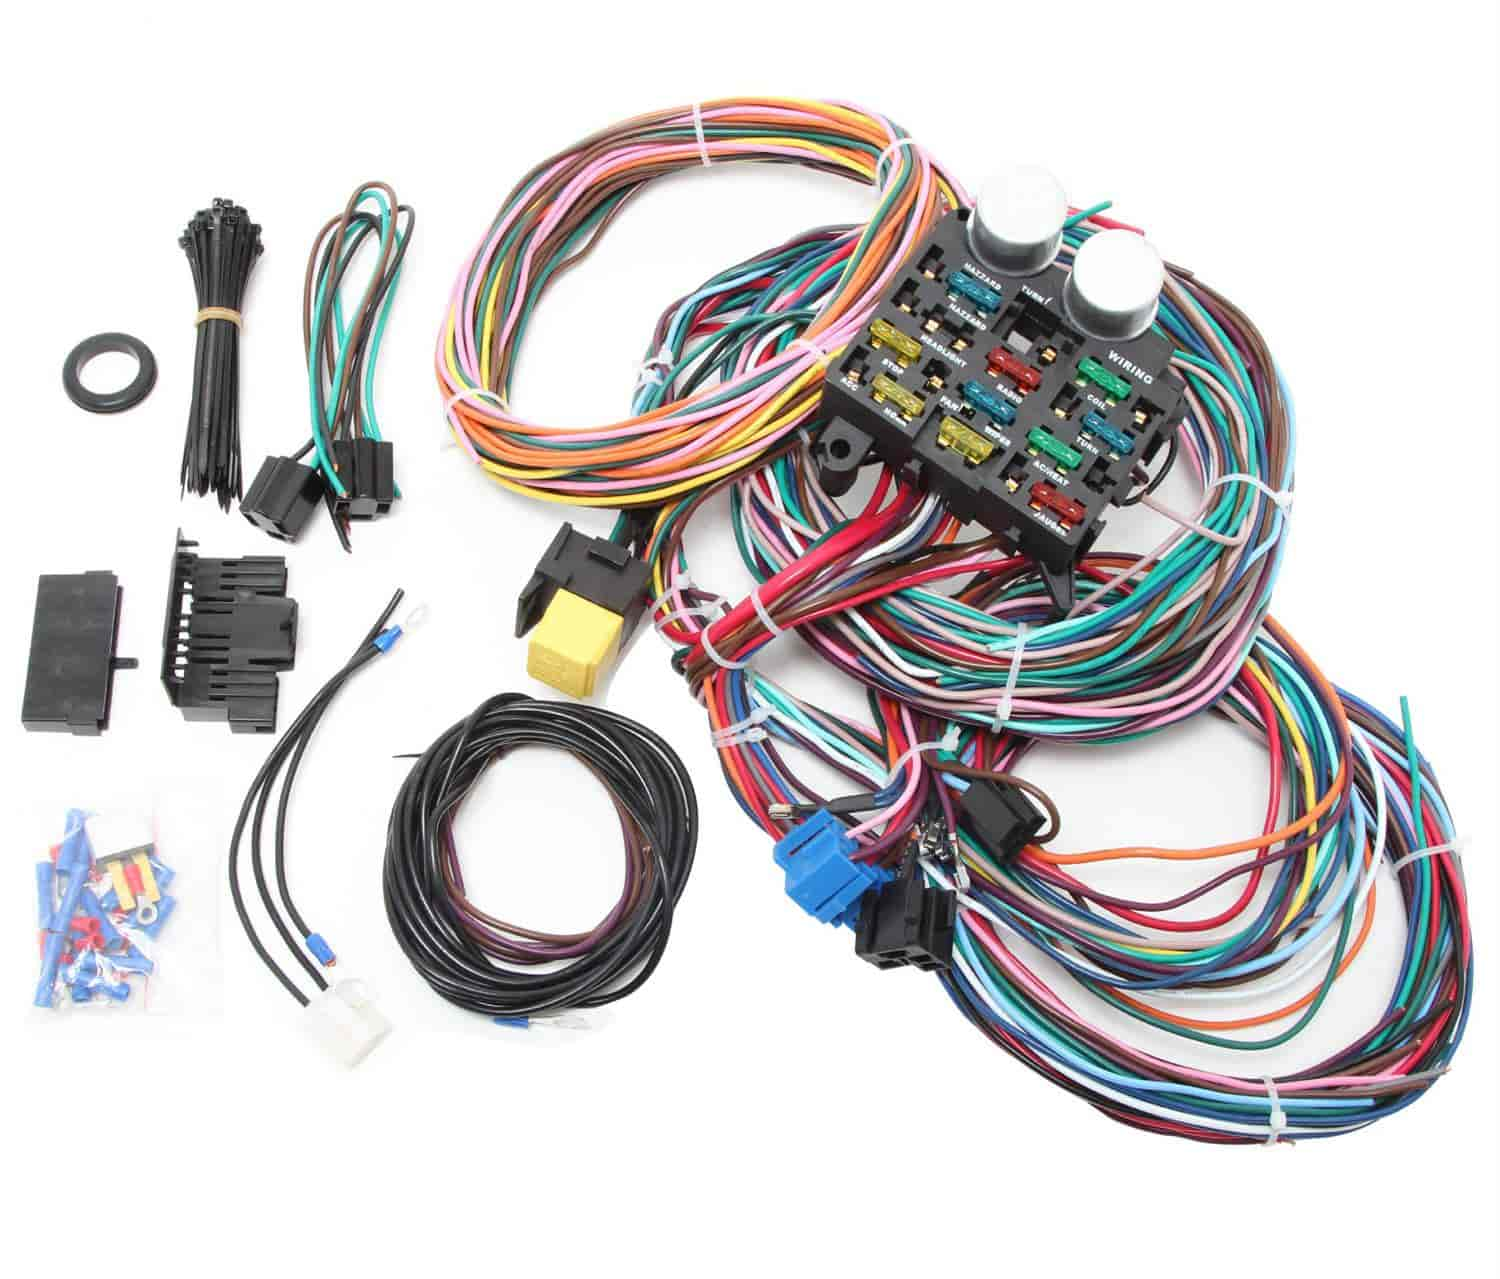 707 r1002x rpc r1002x universal 12 circuit wire harness kit jegs VW Wiring Harness Kits at gsmx.co